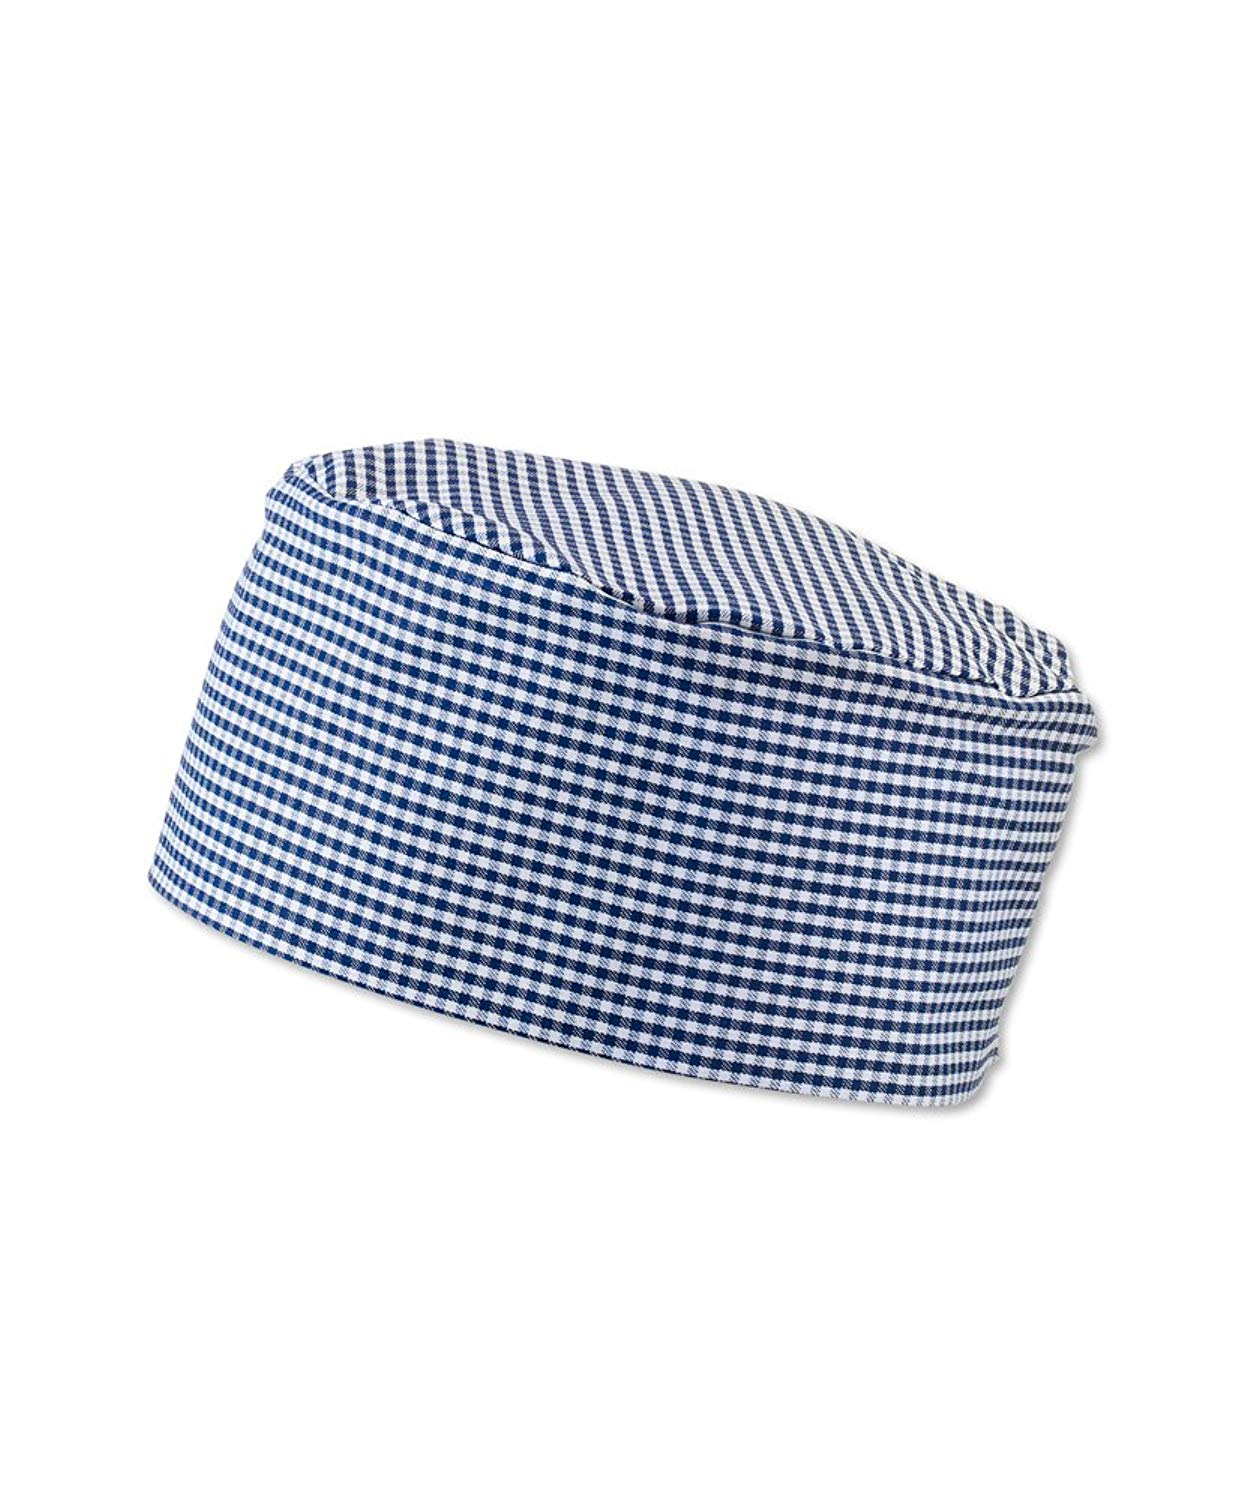 847fa5c8 Get Quotations · Alexandra Workwear Unisex Woven Check Skull Cap